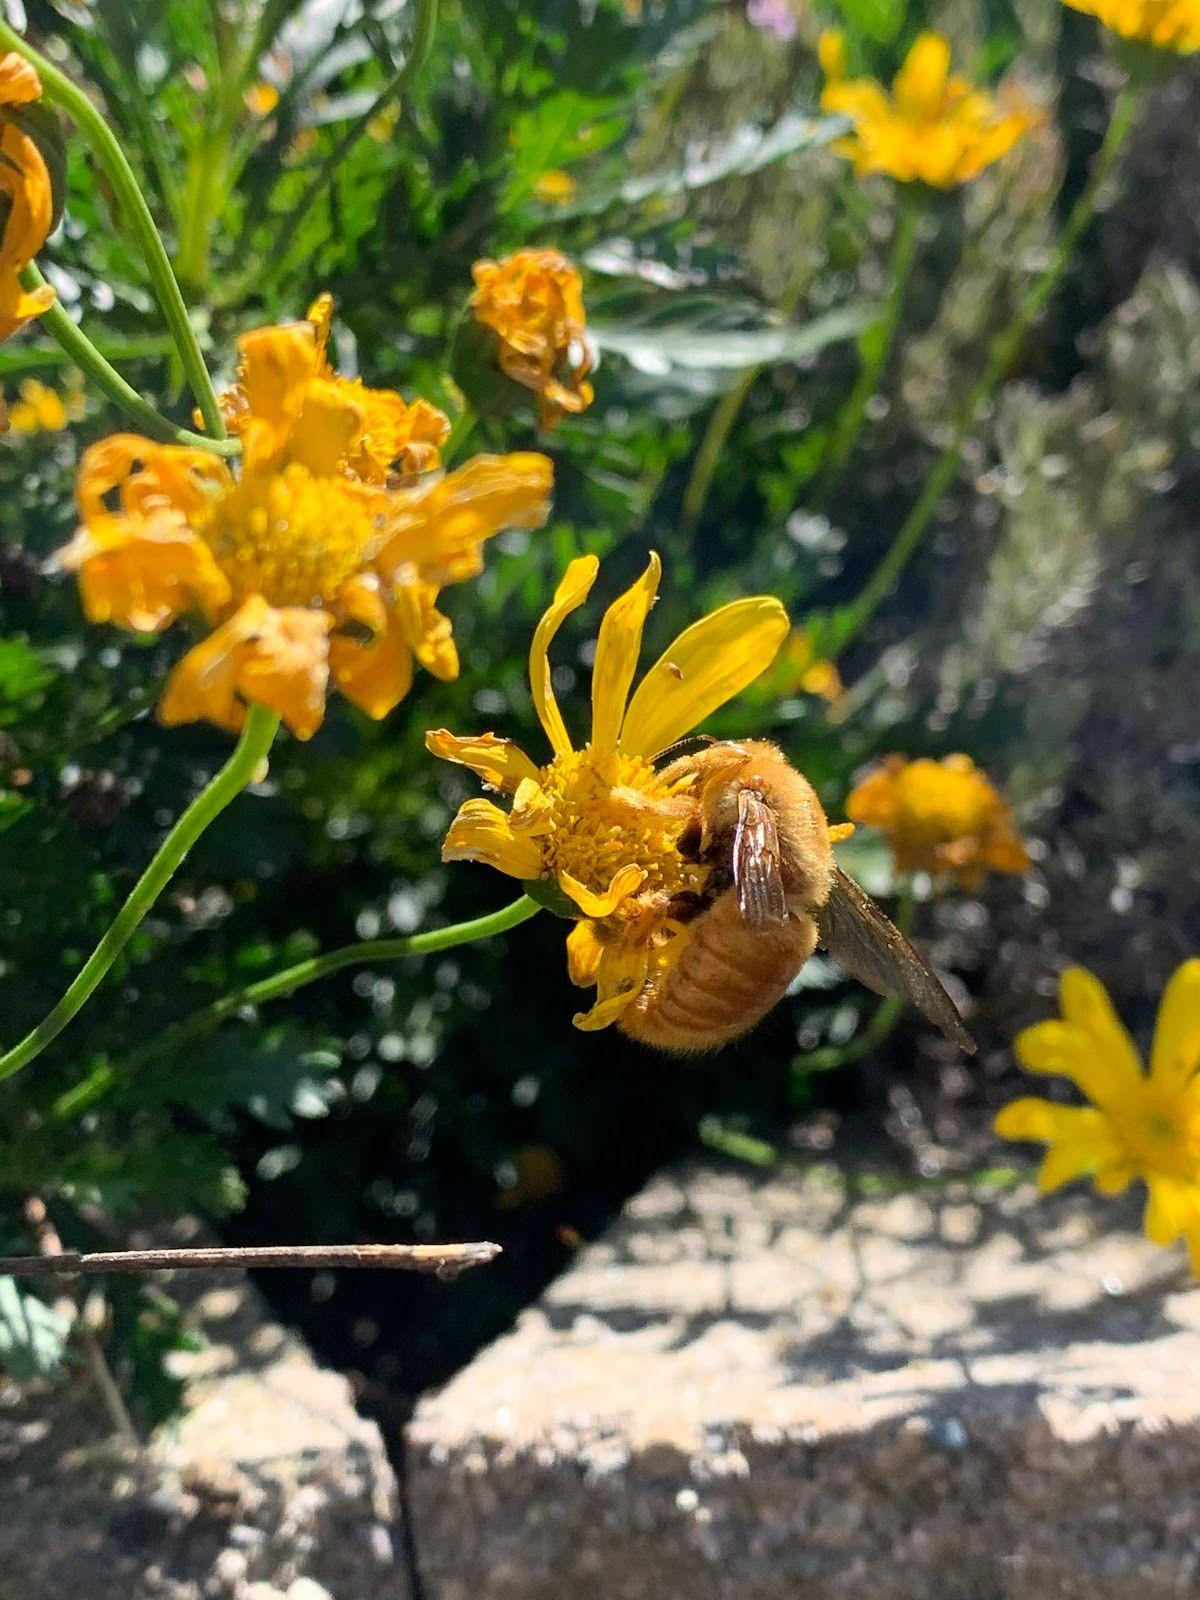 Yellow flowers on green stems. Large  brown bee on one of the flowers.